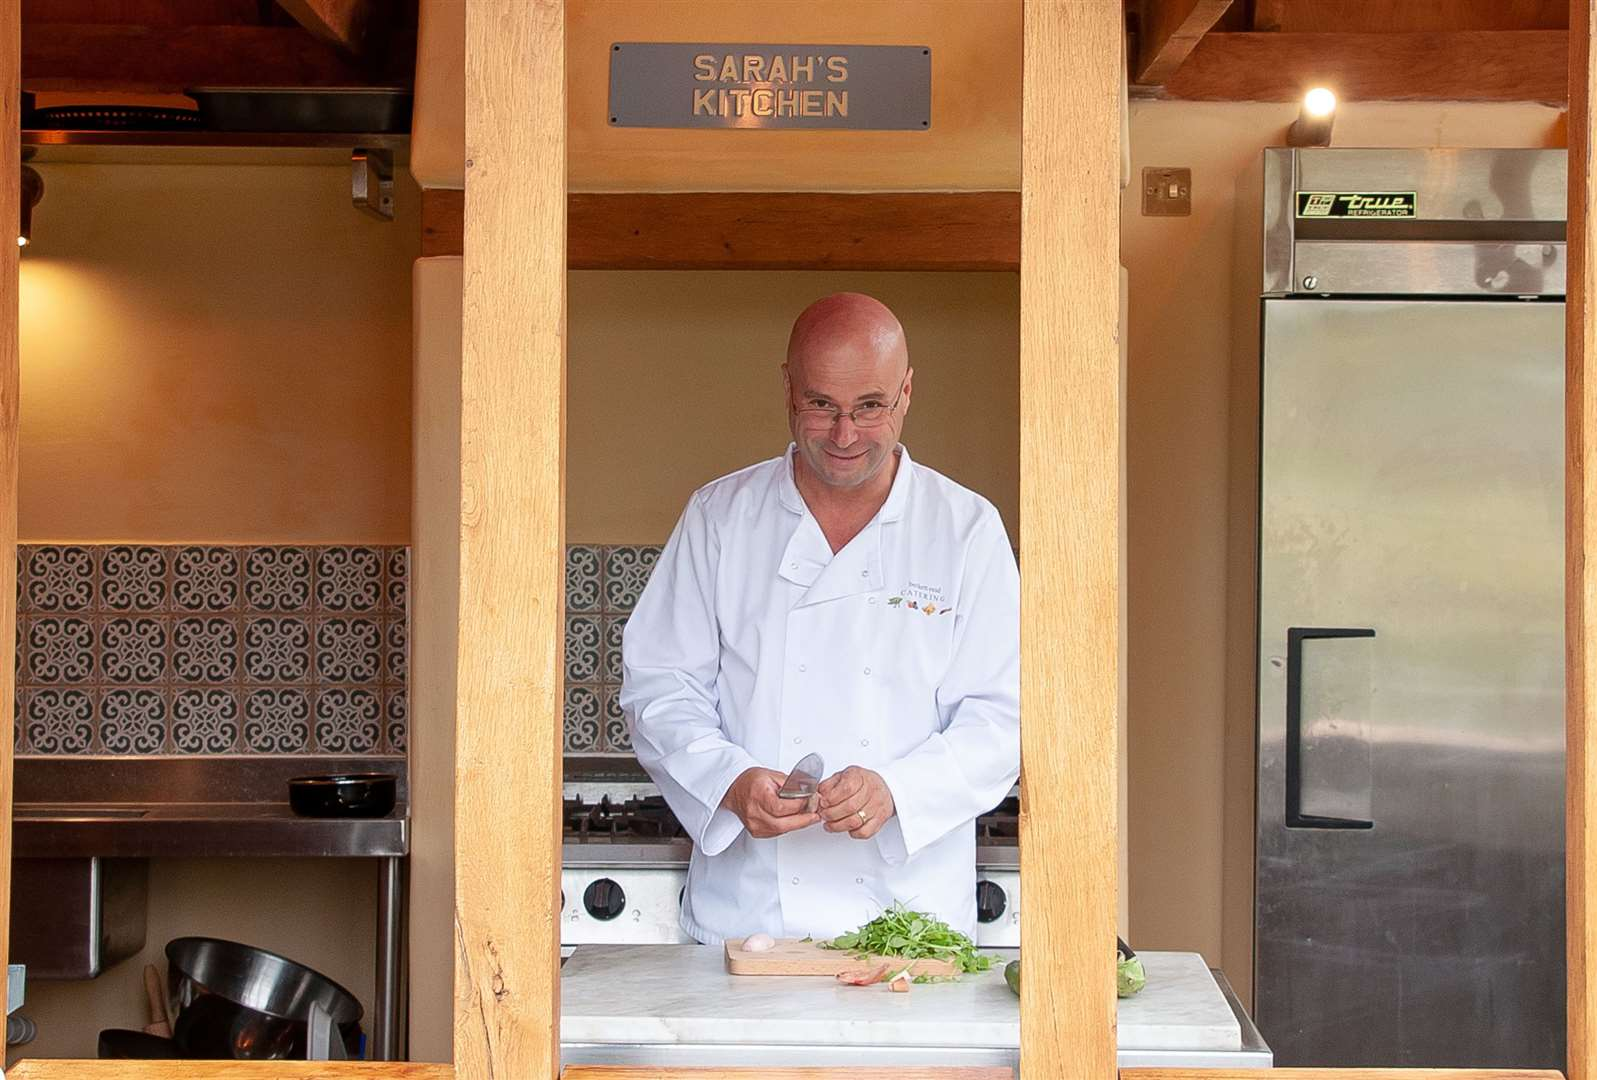 Simon Beckett-Allen is launching the book Cooking for One in memory of his sister, Sarah, a chef. Picture: Contributed